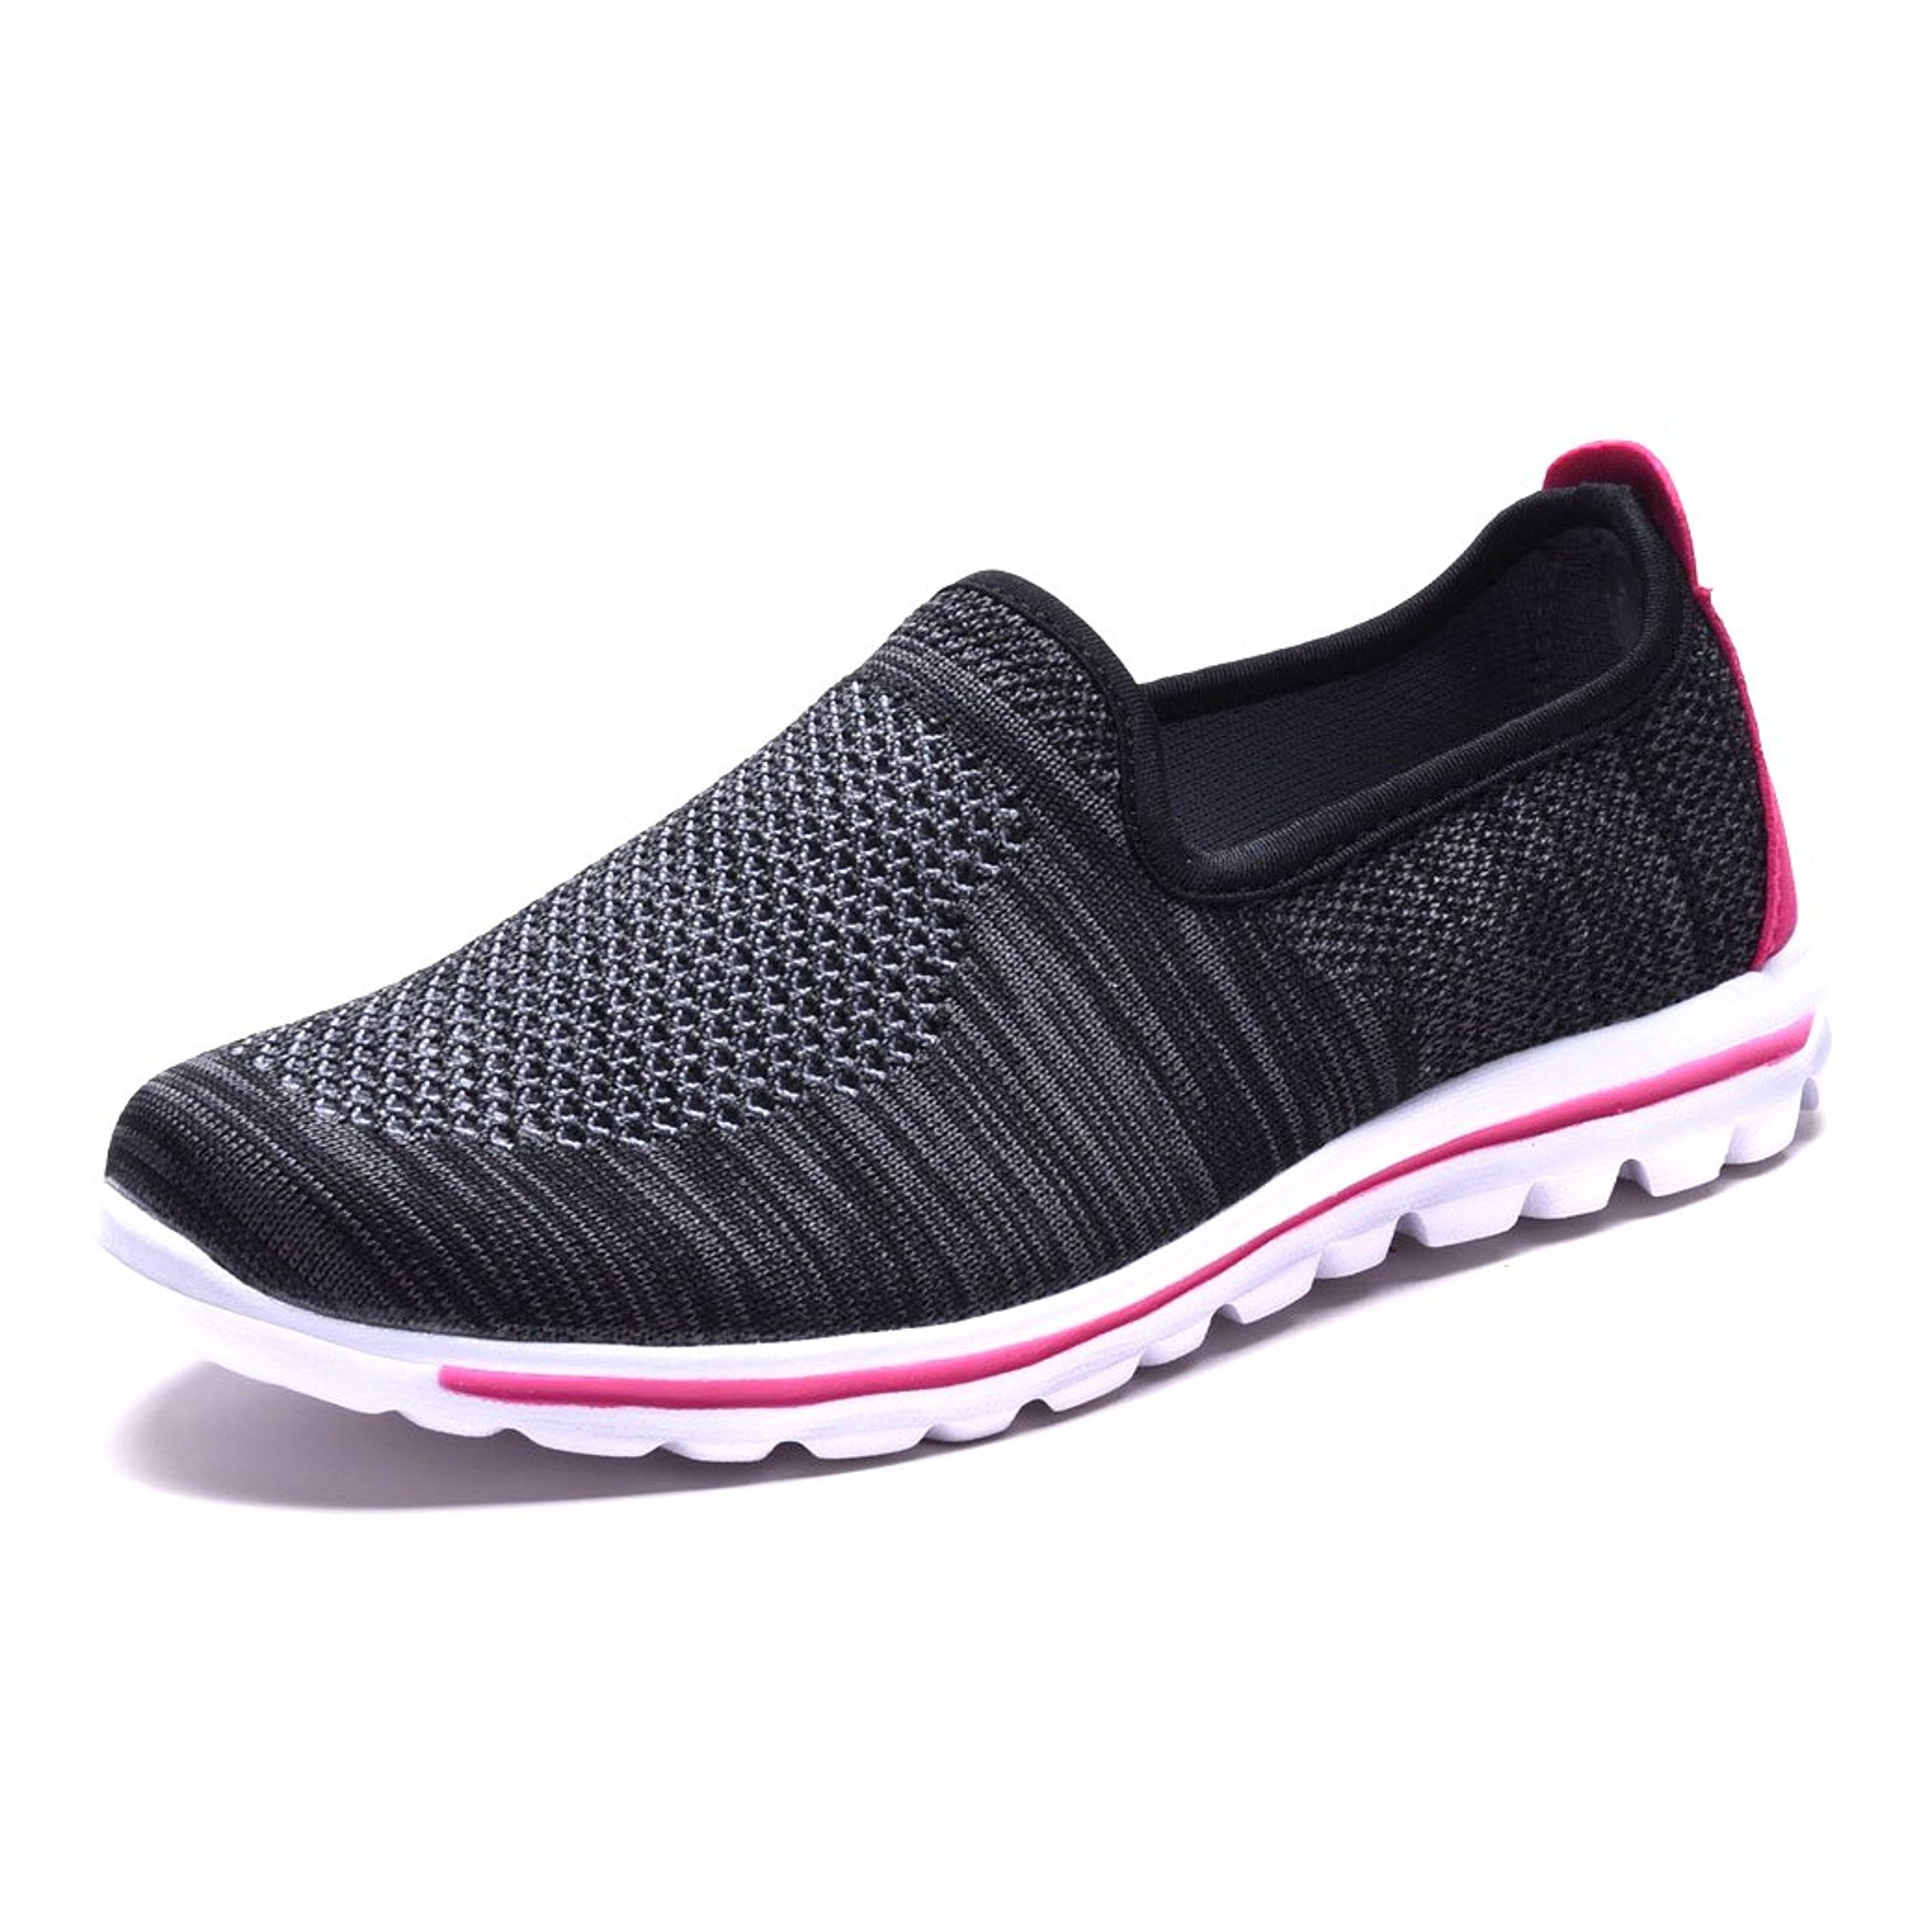 DailyShoes Women's Fit Mesh Slip-on Style Walking Shoes with Memory Foam Insoles- Breathable Mesh - Durable Soles - Reliable Traction - Perfect for Walks and Jogs, Black Fuchsia Mesh, 10 B(M) US